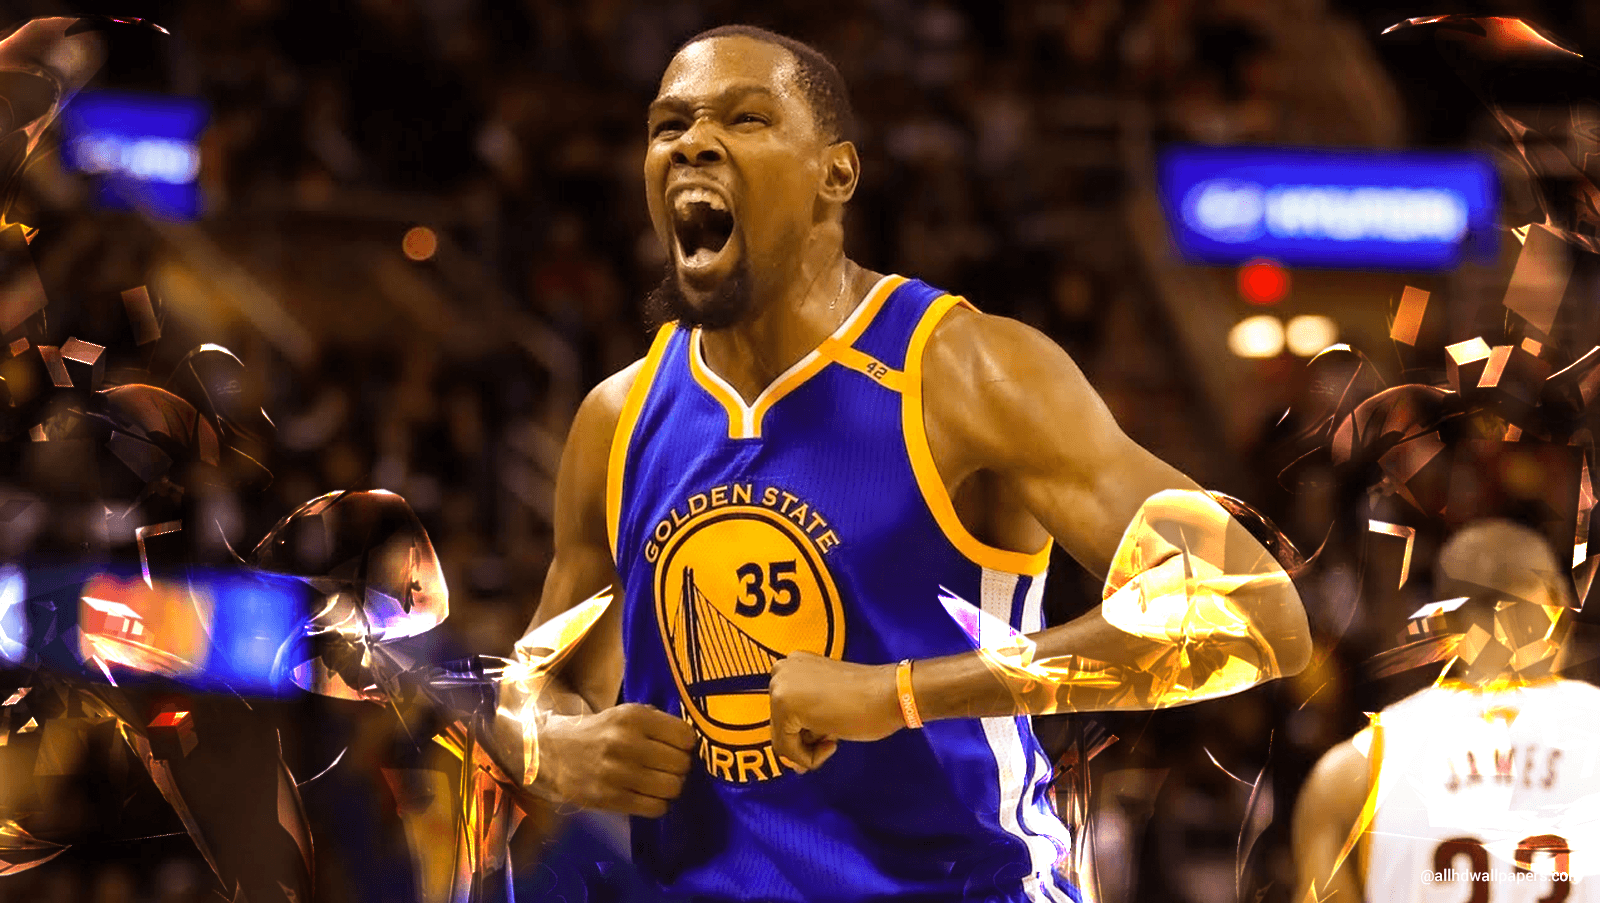 Kevin Durant 2018 HD Wallpapers - Wallpaper Cave